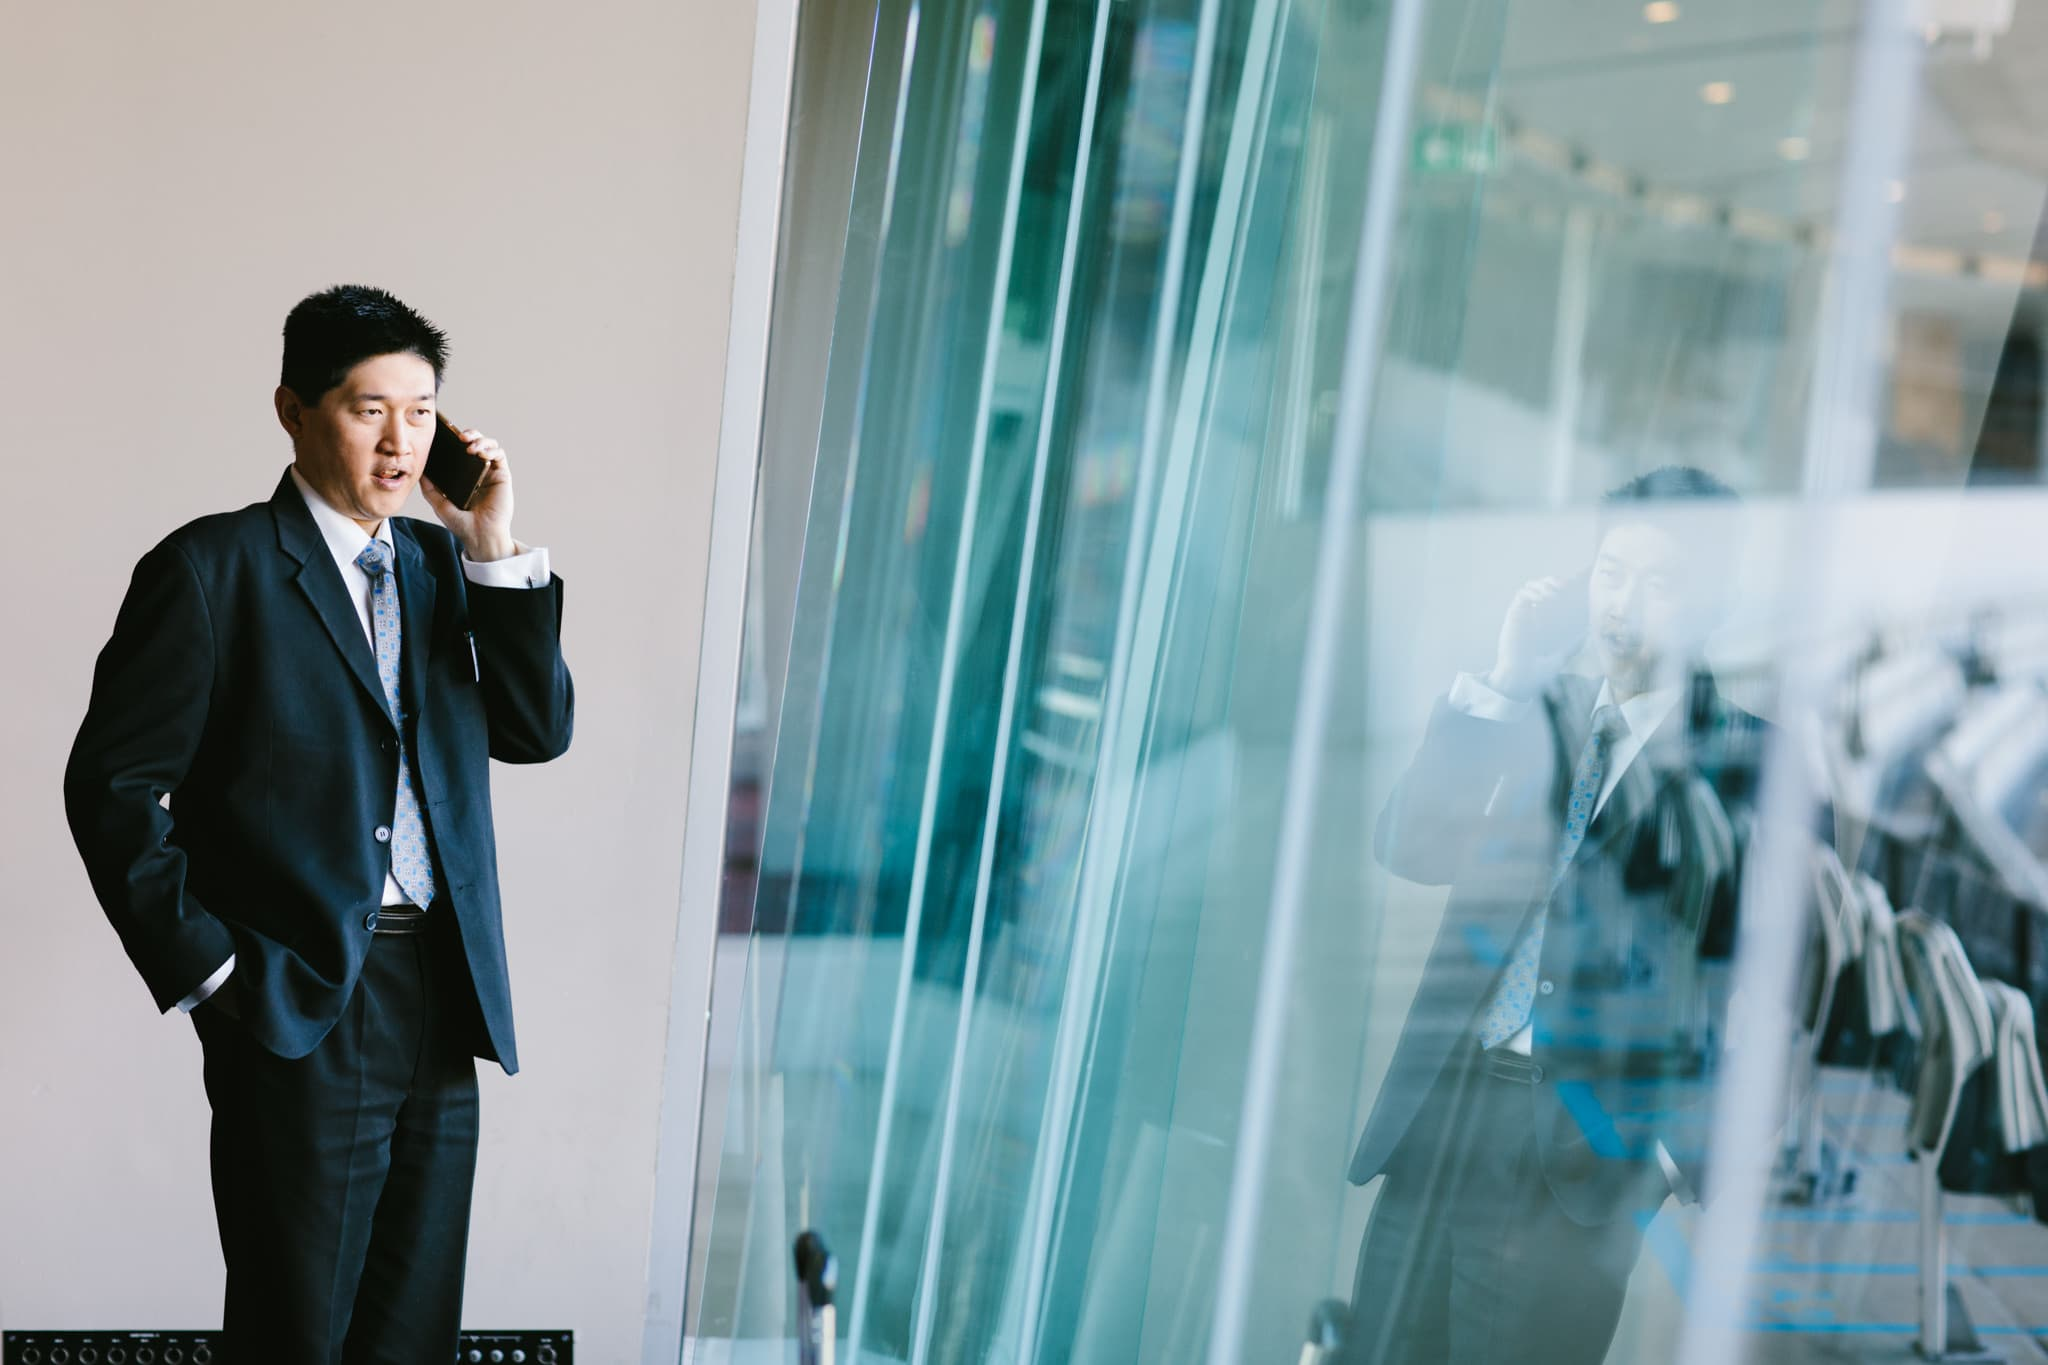 asian man on mobile phone in front of white wall and windows